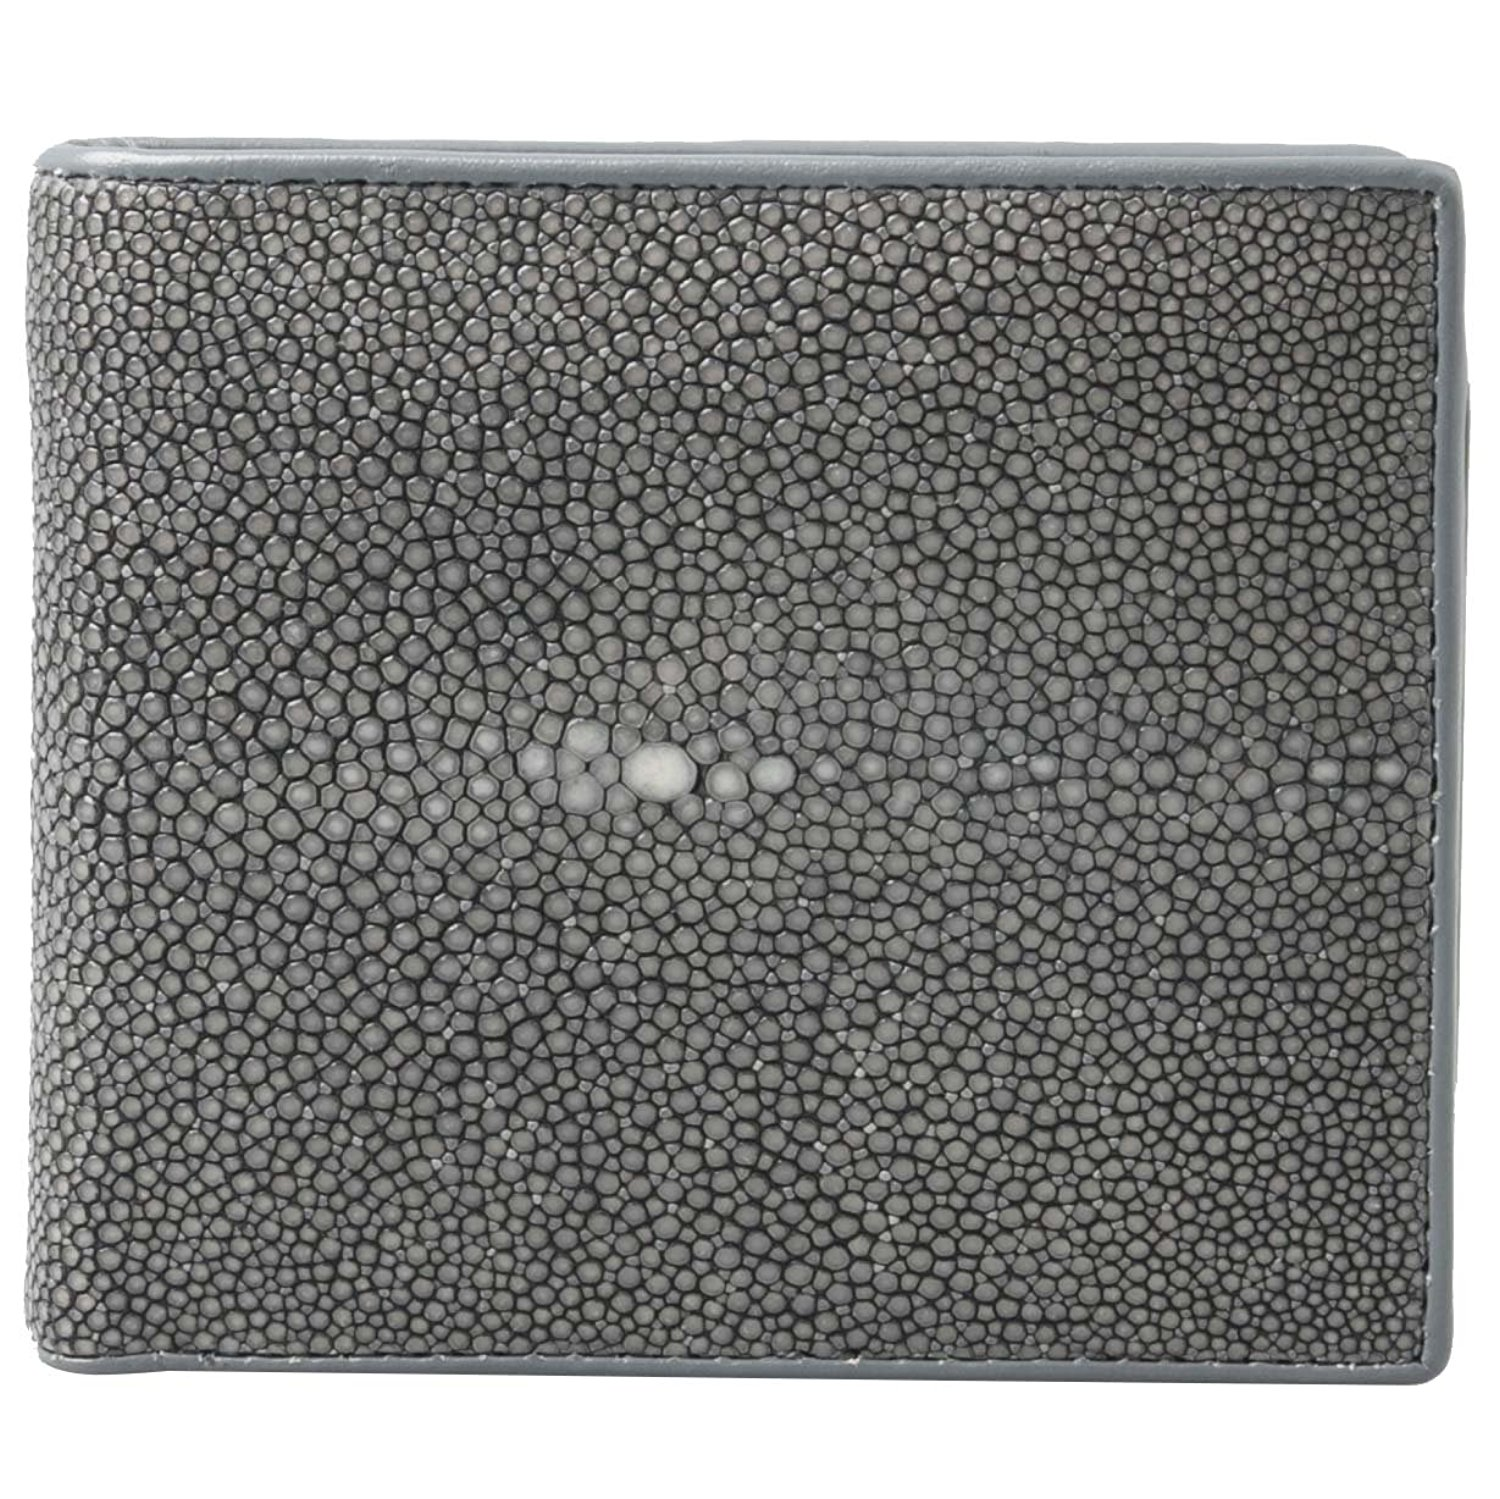 fb6efb6d34dc Cheap Stingray Wallet, find Stingray Wallet deals on line at Alibaba.com